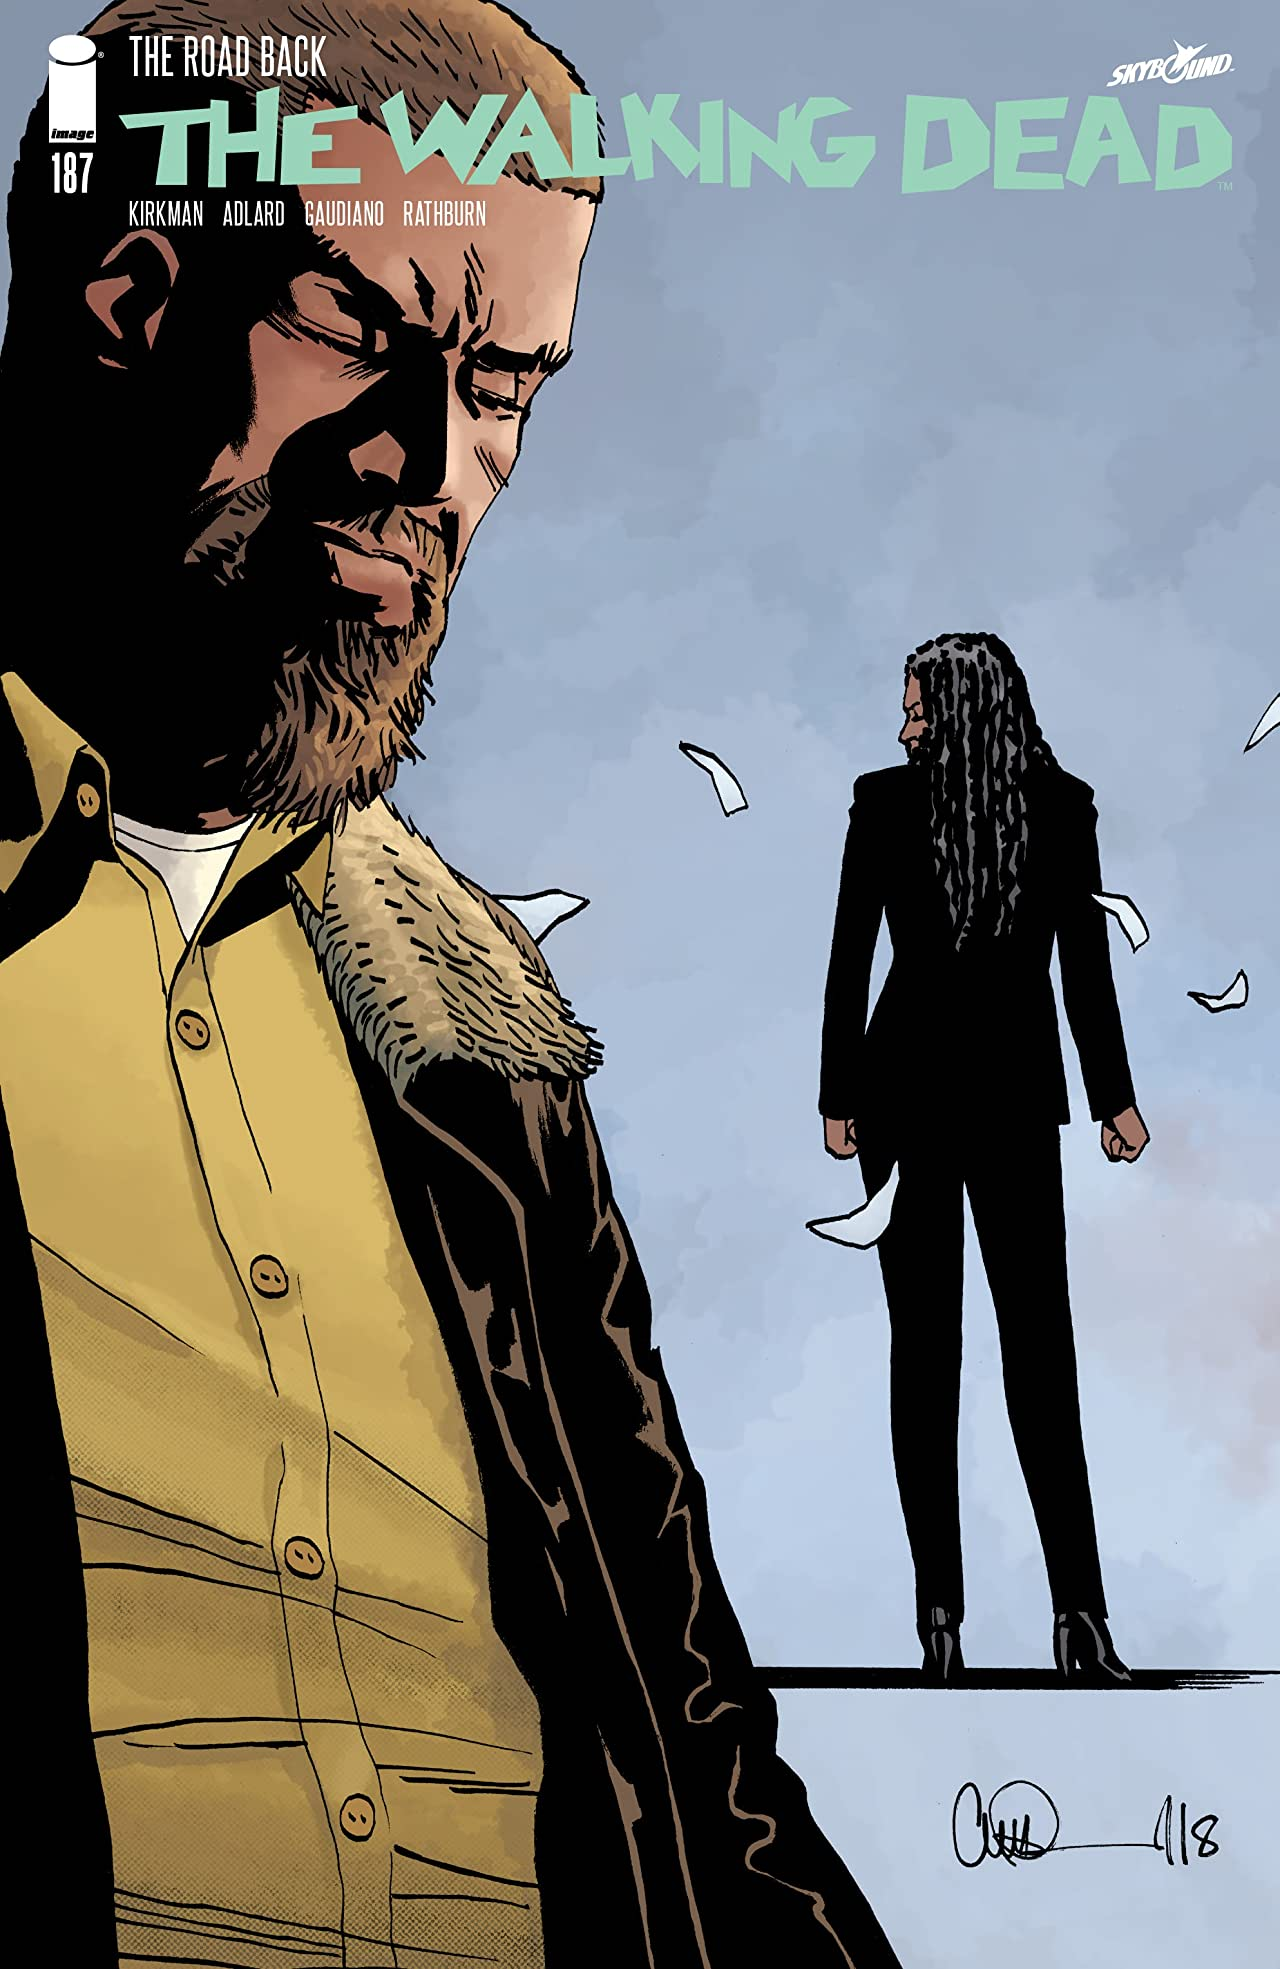 The Walking Dead No.187